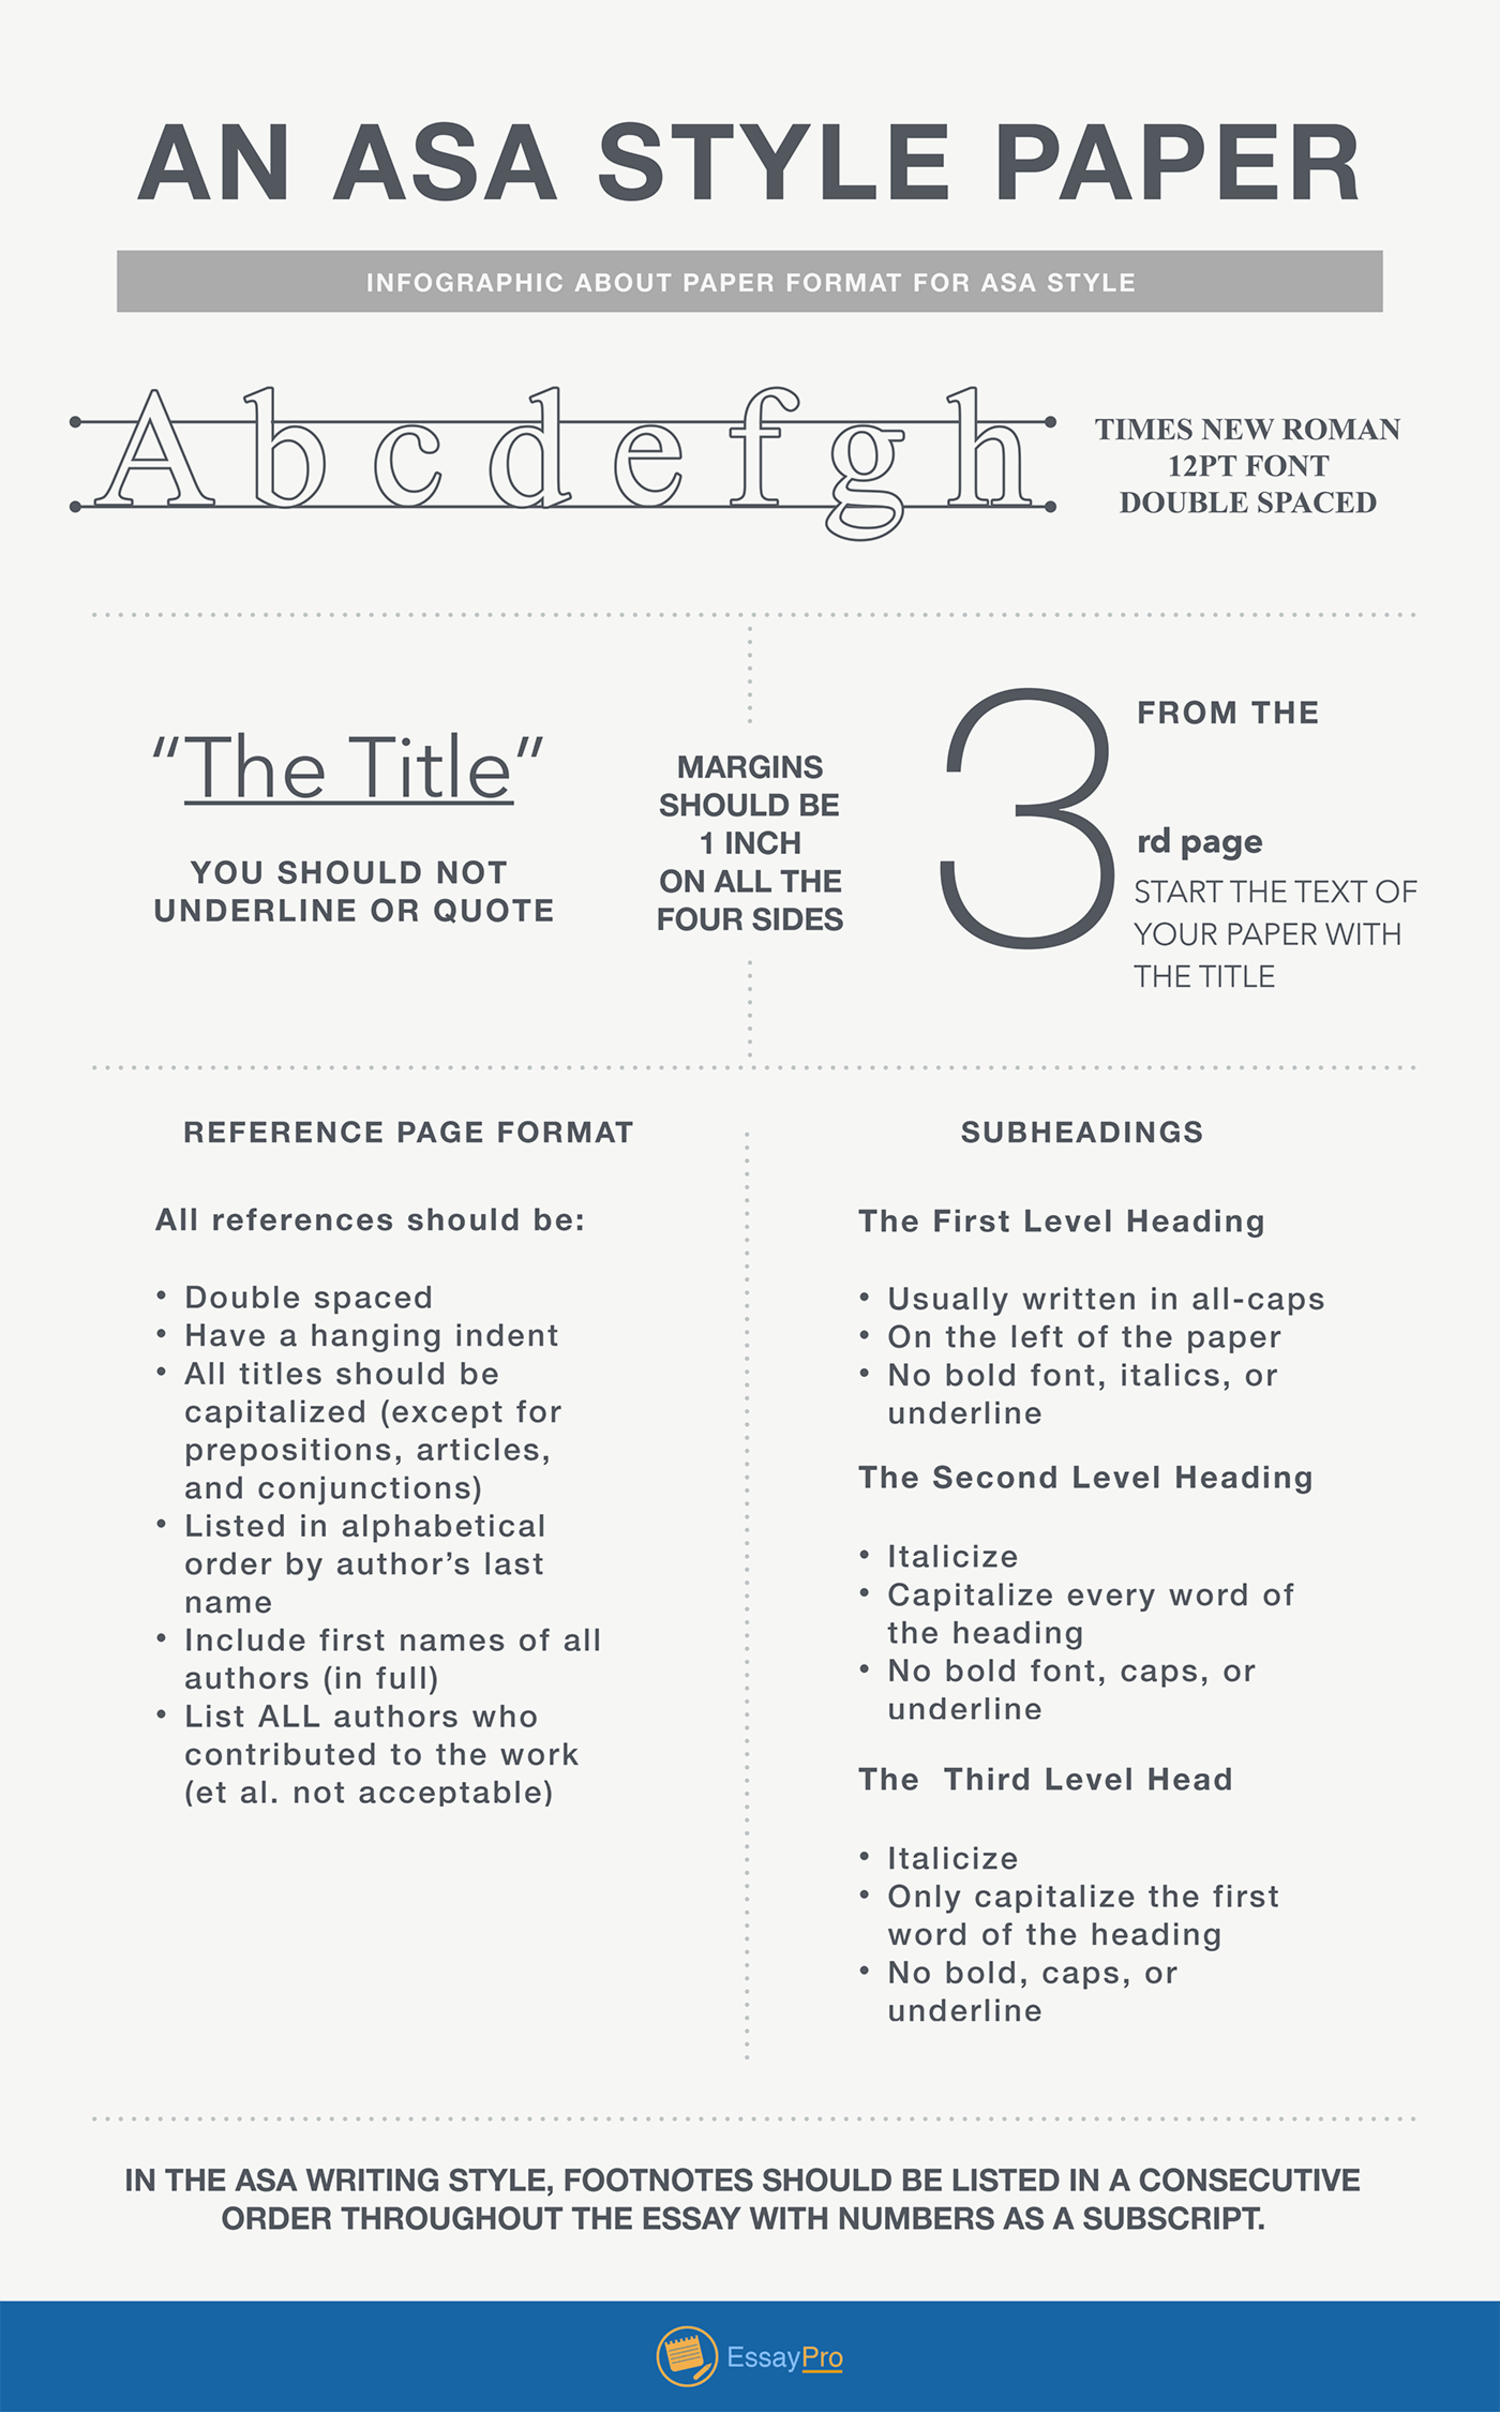 What Kind Of Paper Should I Use For My Resume Asa Style Paper Format Styles And Formats Pinterest